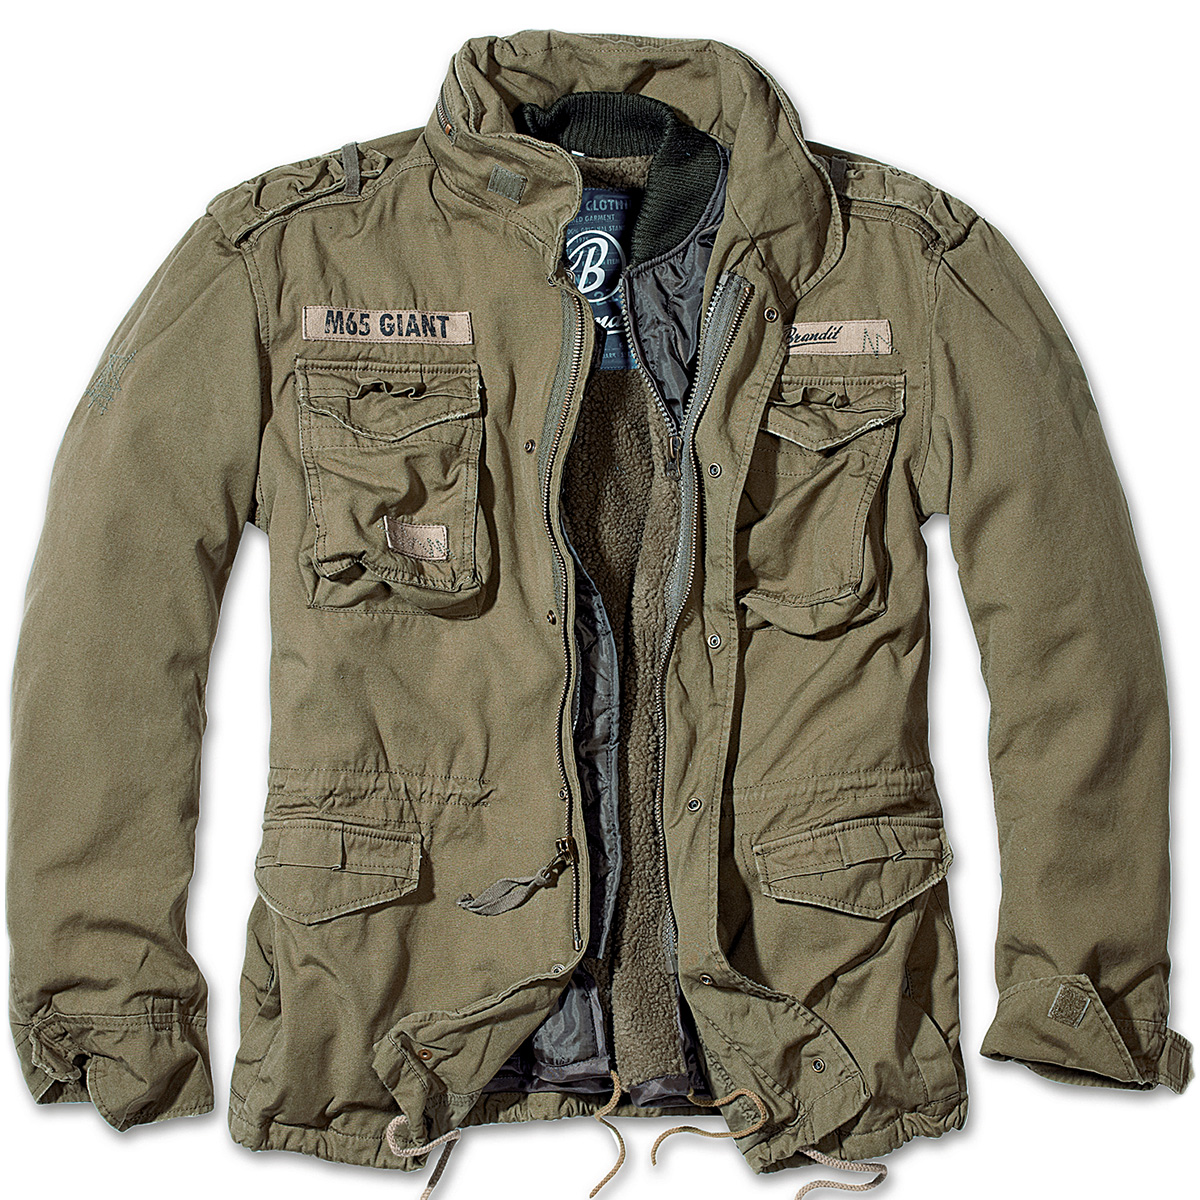 About US Army Jackets Since its formation in , the Army has defended America and her citizens at home and throughout the world. You proudly served your country, and the U.S. Army jacket is just what you need to show your pride for your time in the military.